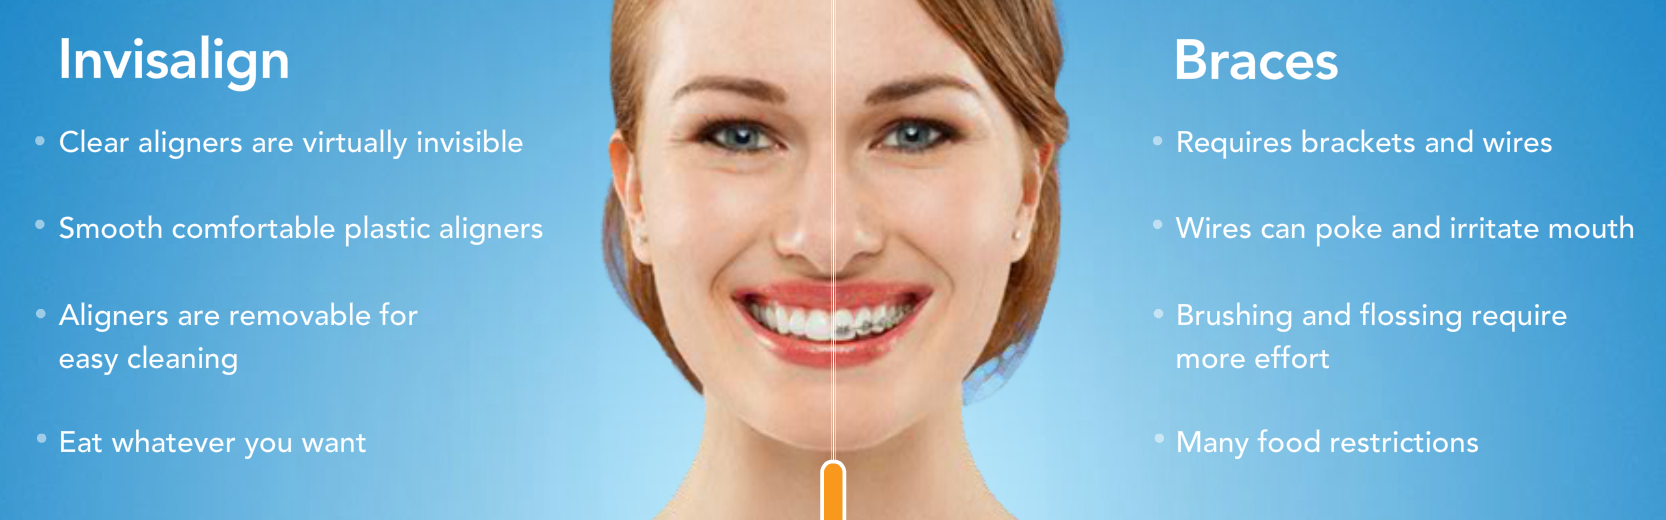 Invisalign clear braces grand rapids straighten teeth with straighten teeth with invisalign with a grand rapids dentist in comstock park solutioingenieria Images